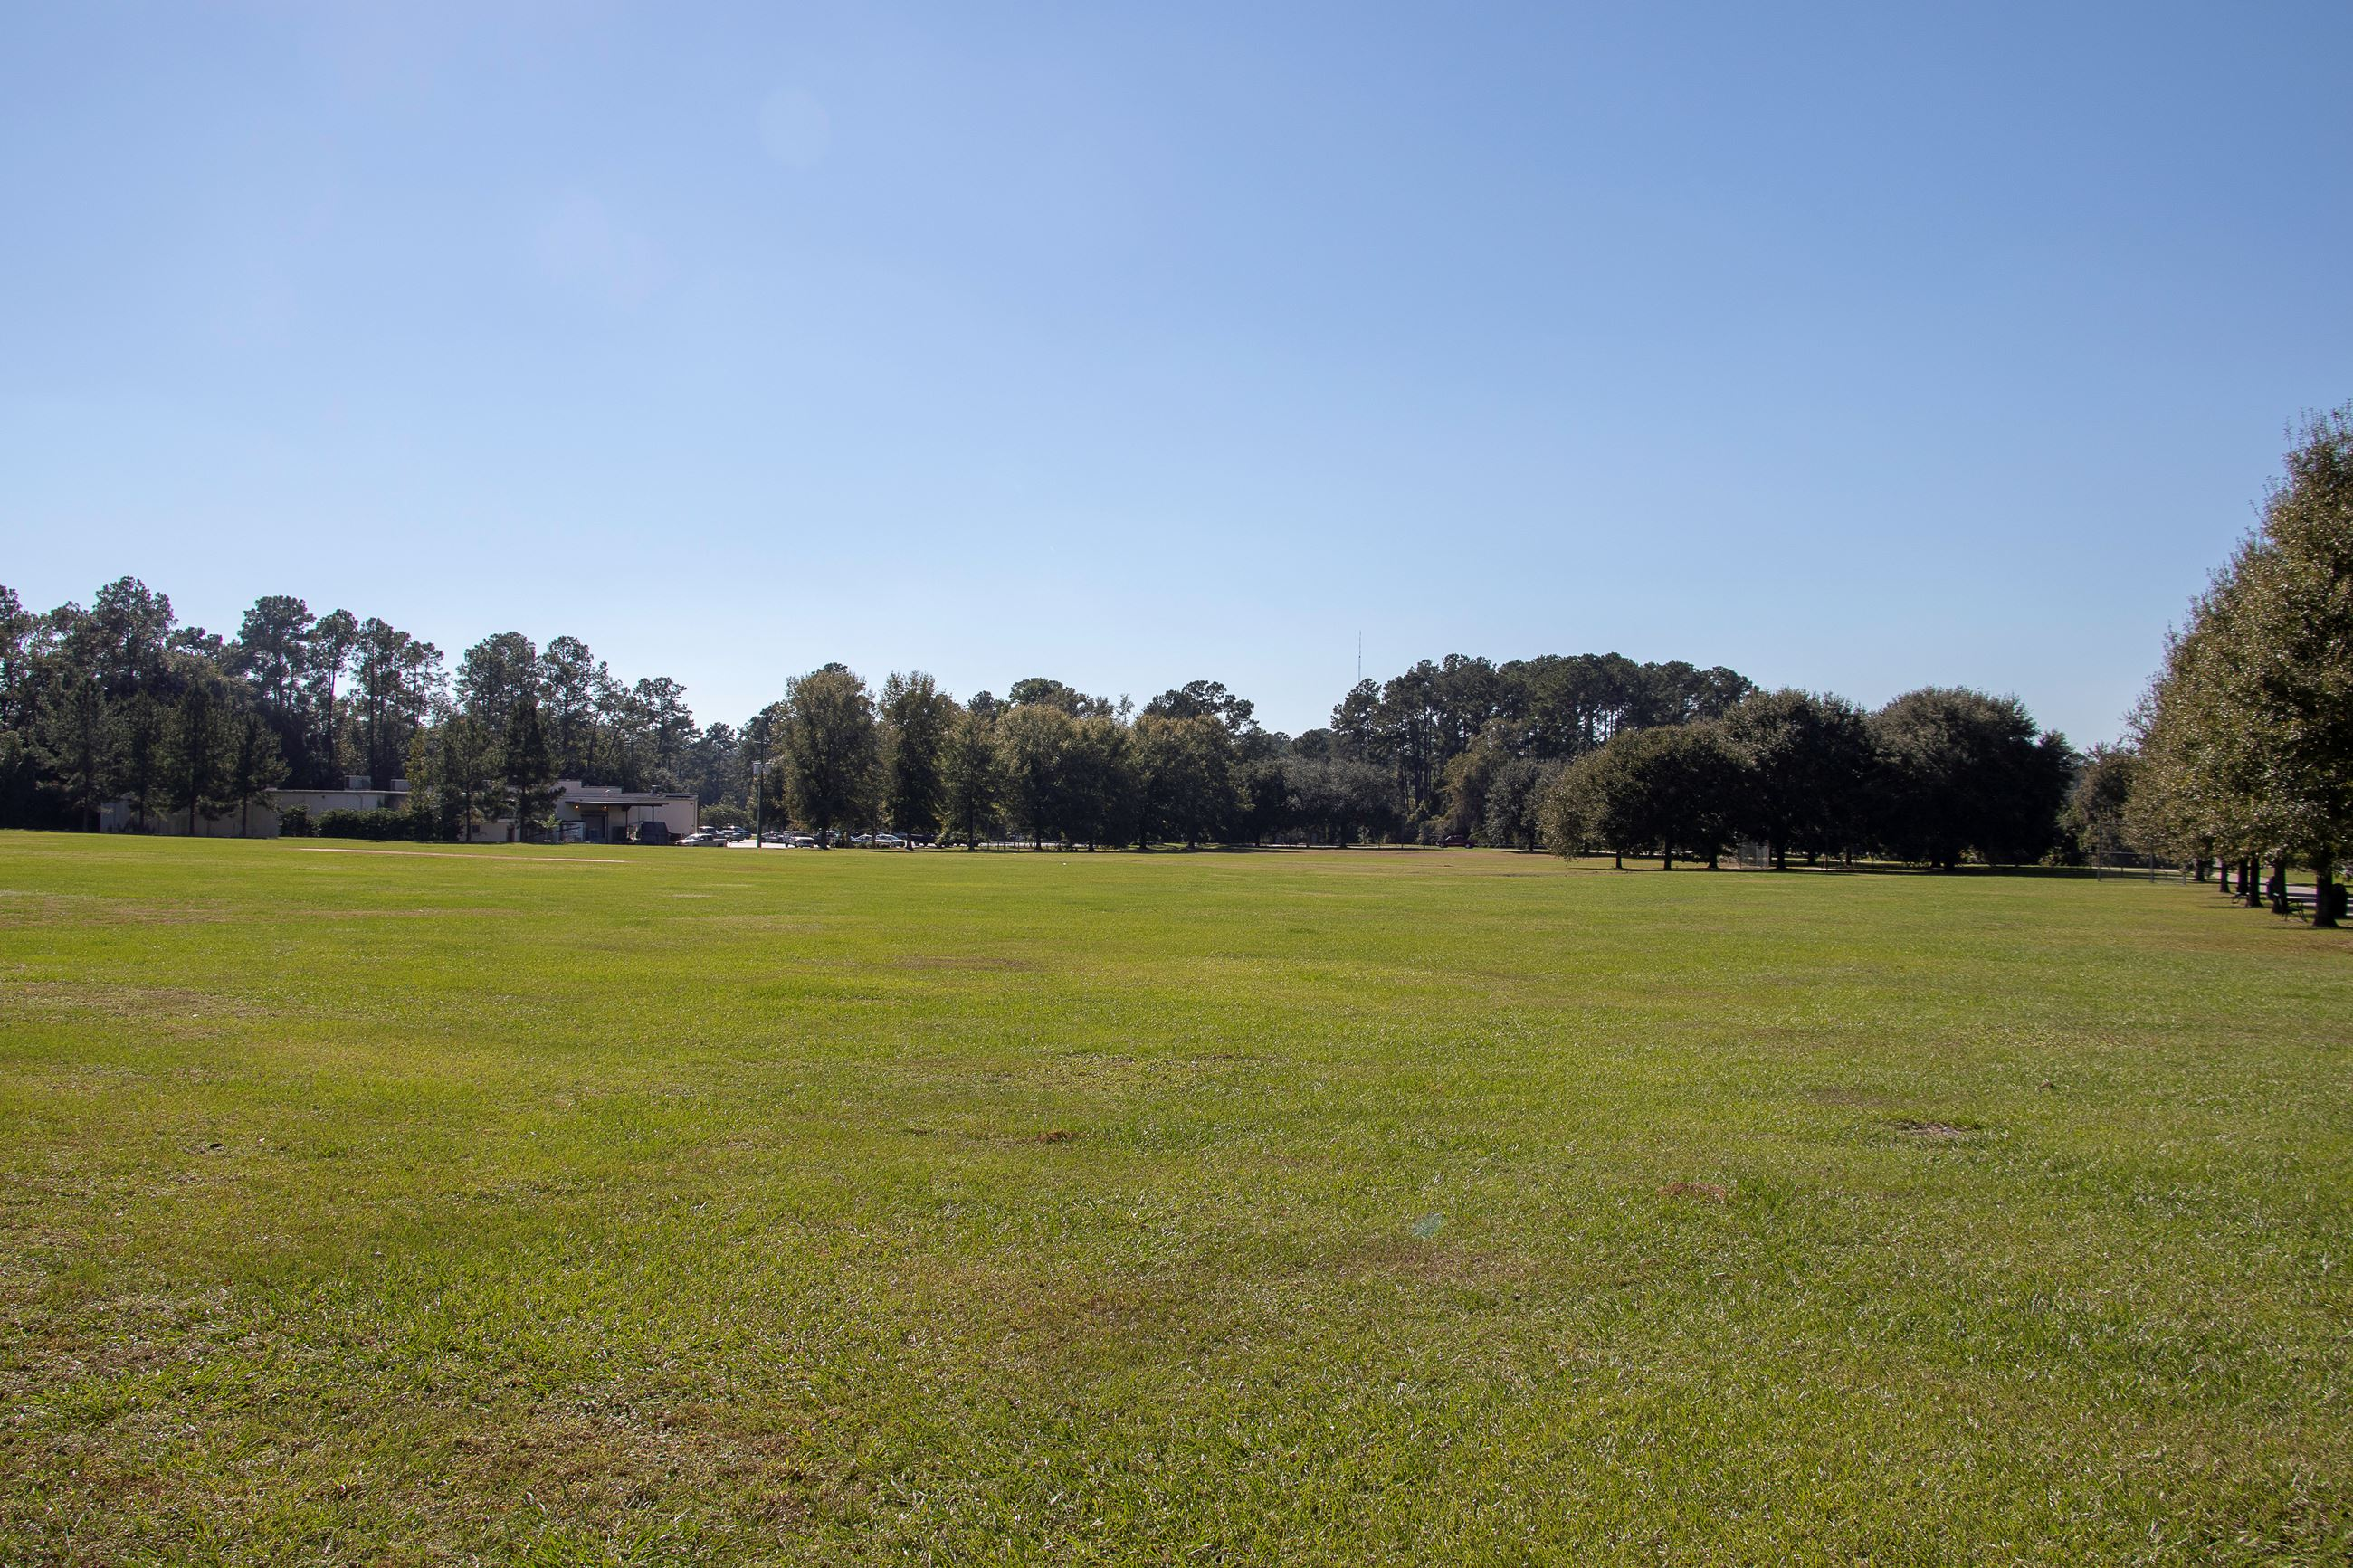 An image of a large grassy field.